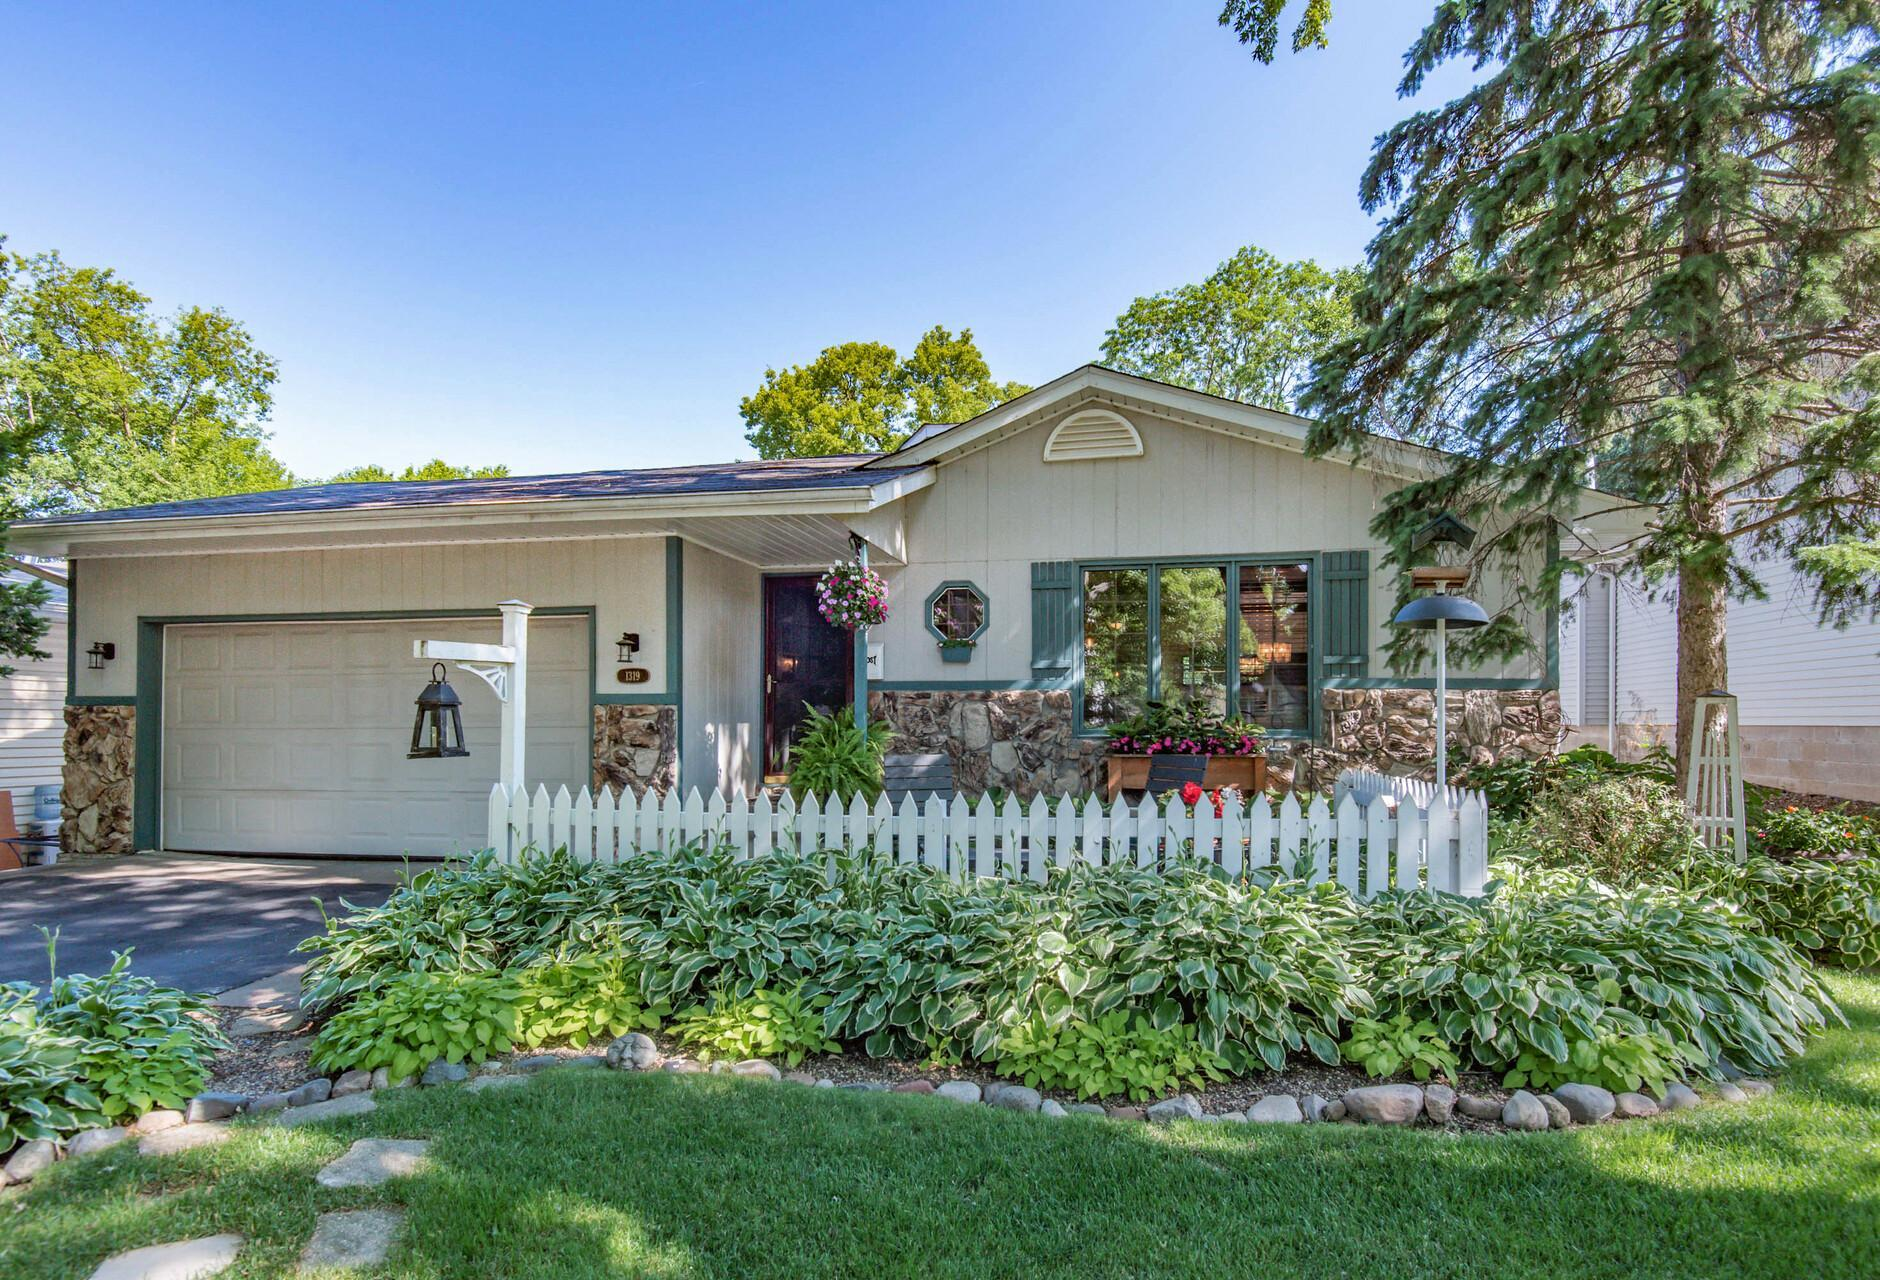 1319 42 1/2 NE Property Photo - Columbia Heights, MN real estate listing